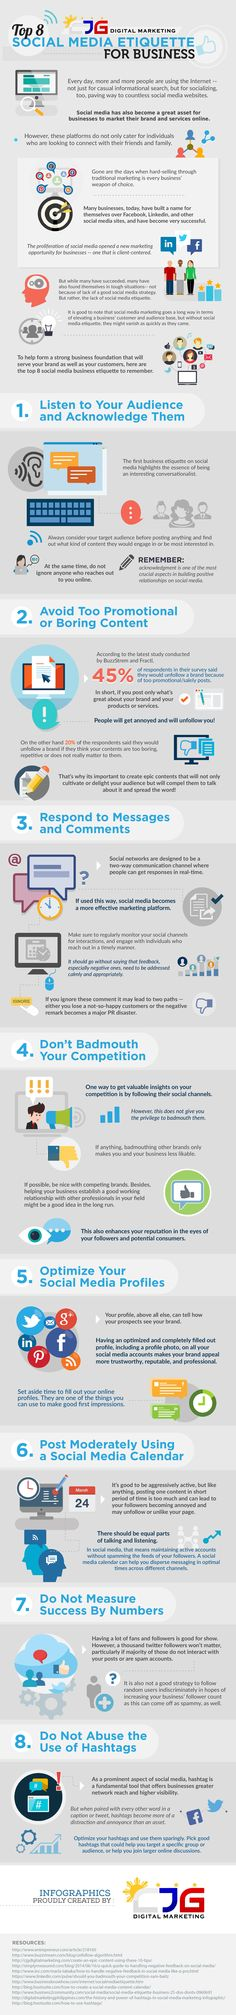 Top 8 Social Media Etiquette for Business #Infographic